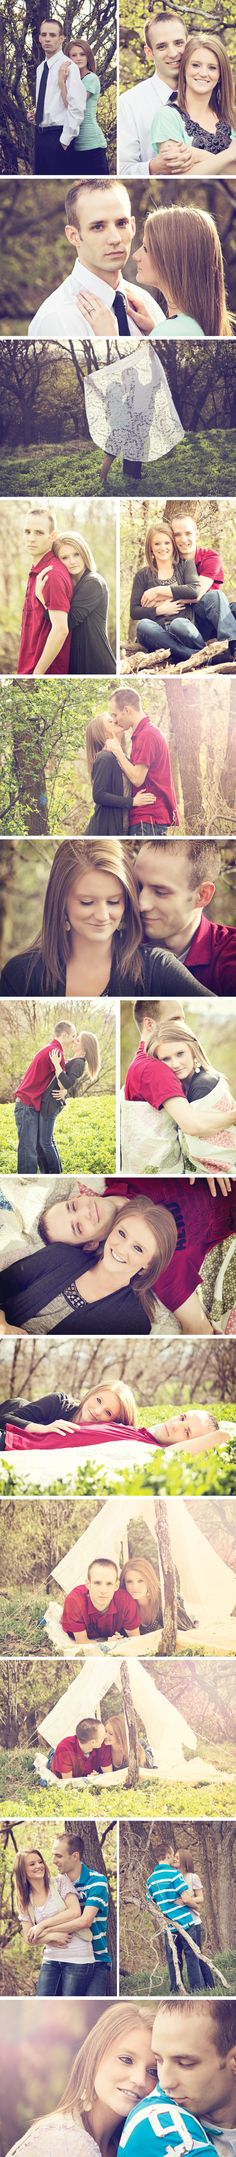 Engagement Shoot-Lace tent, field inspired session-Blackbird Design and Photography